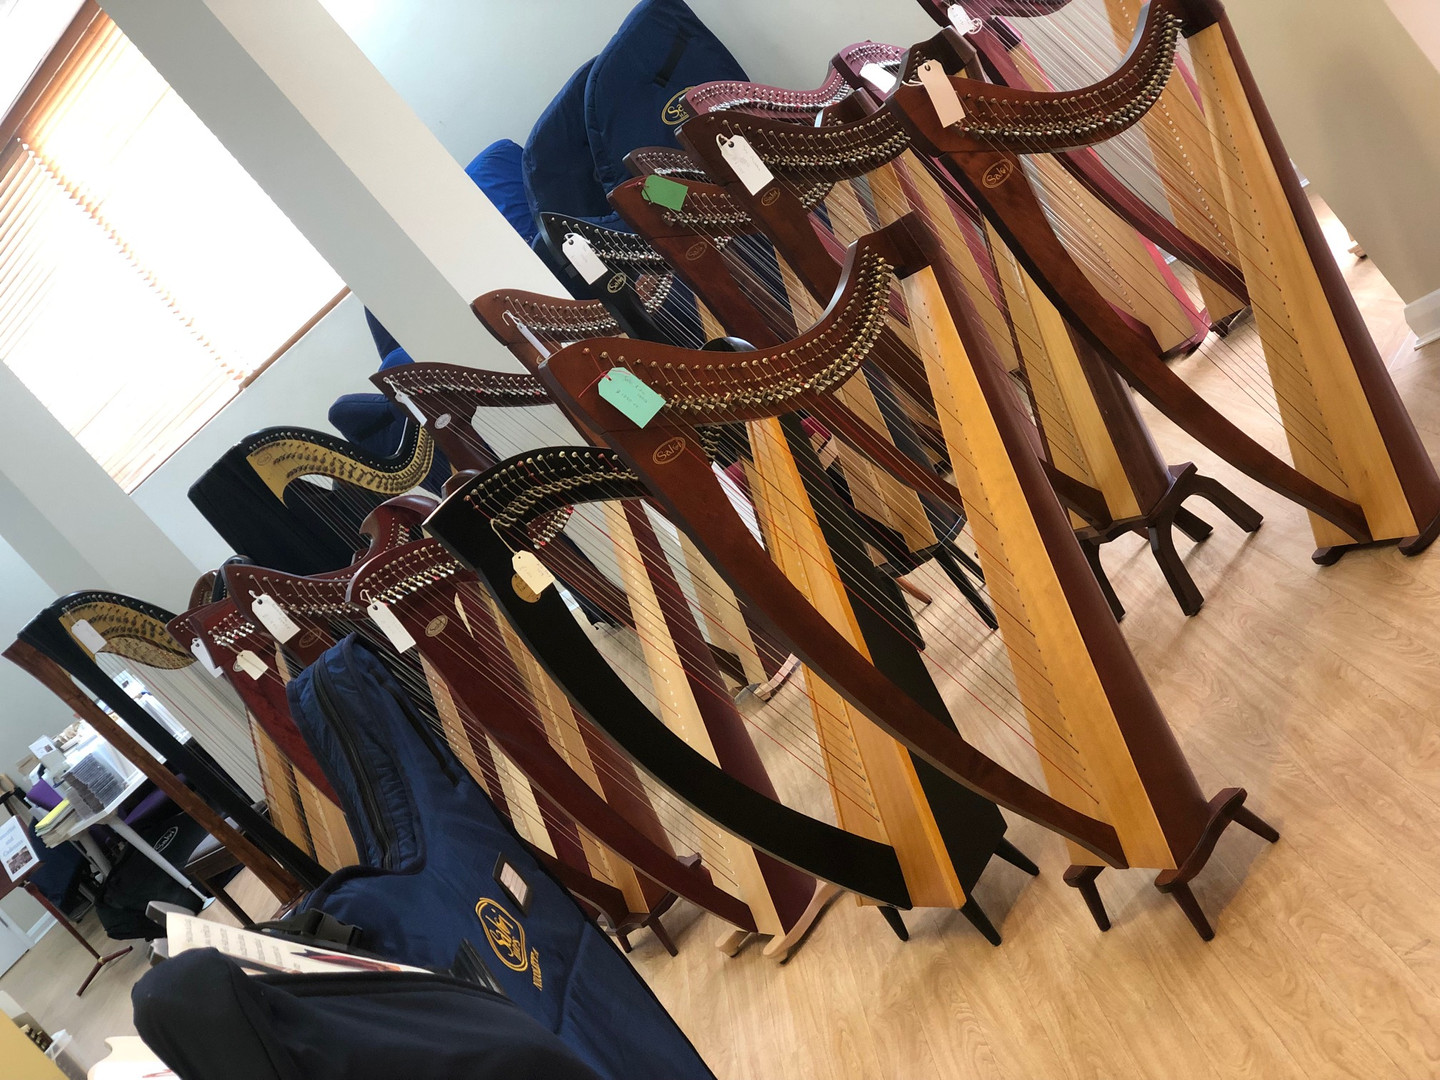 You don't need to bring your own harps!